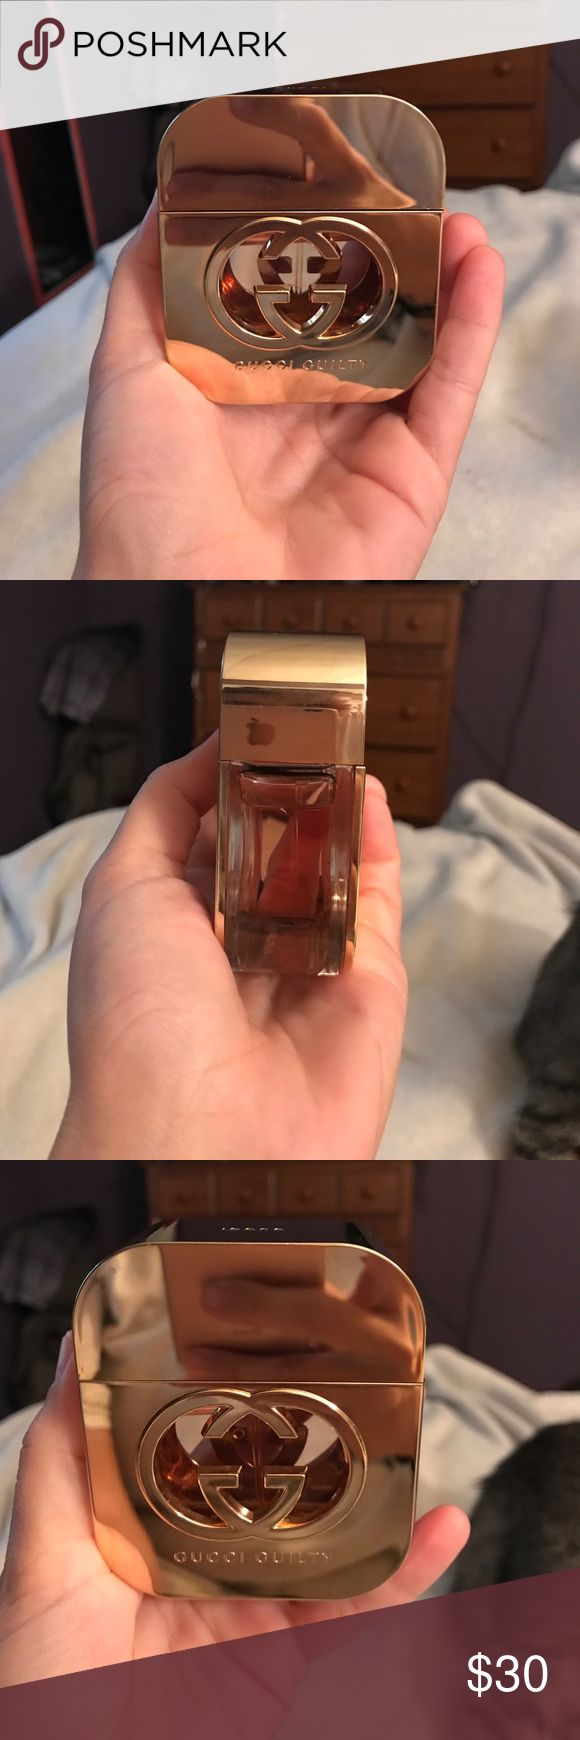 Gucci Guilty perfume Gucci Guilty some small marks and small scratches on the bottle. Just not something I wear anymore. About 3/4 full just check out the pictures its the 1.6 oz.  pet friendly smoke free home! Gucci Other